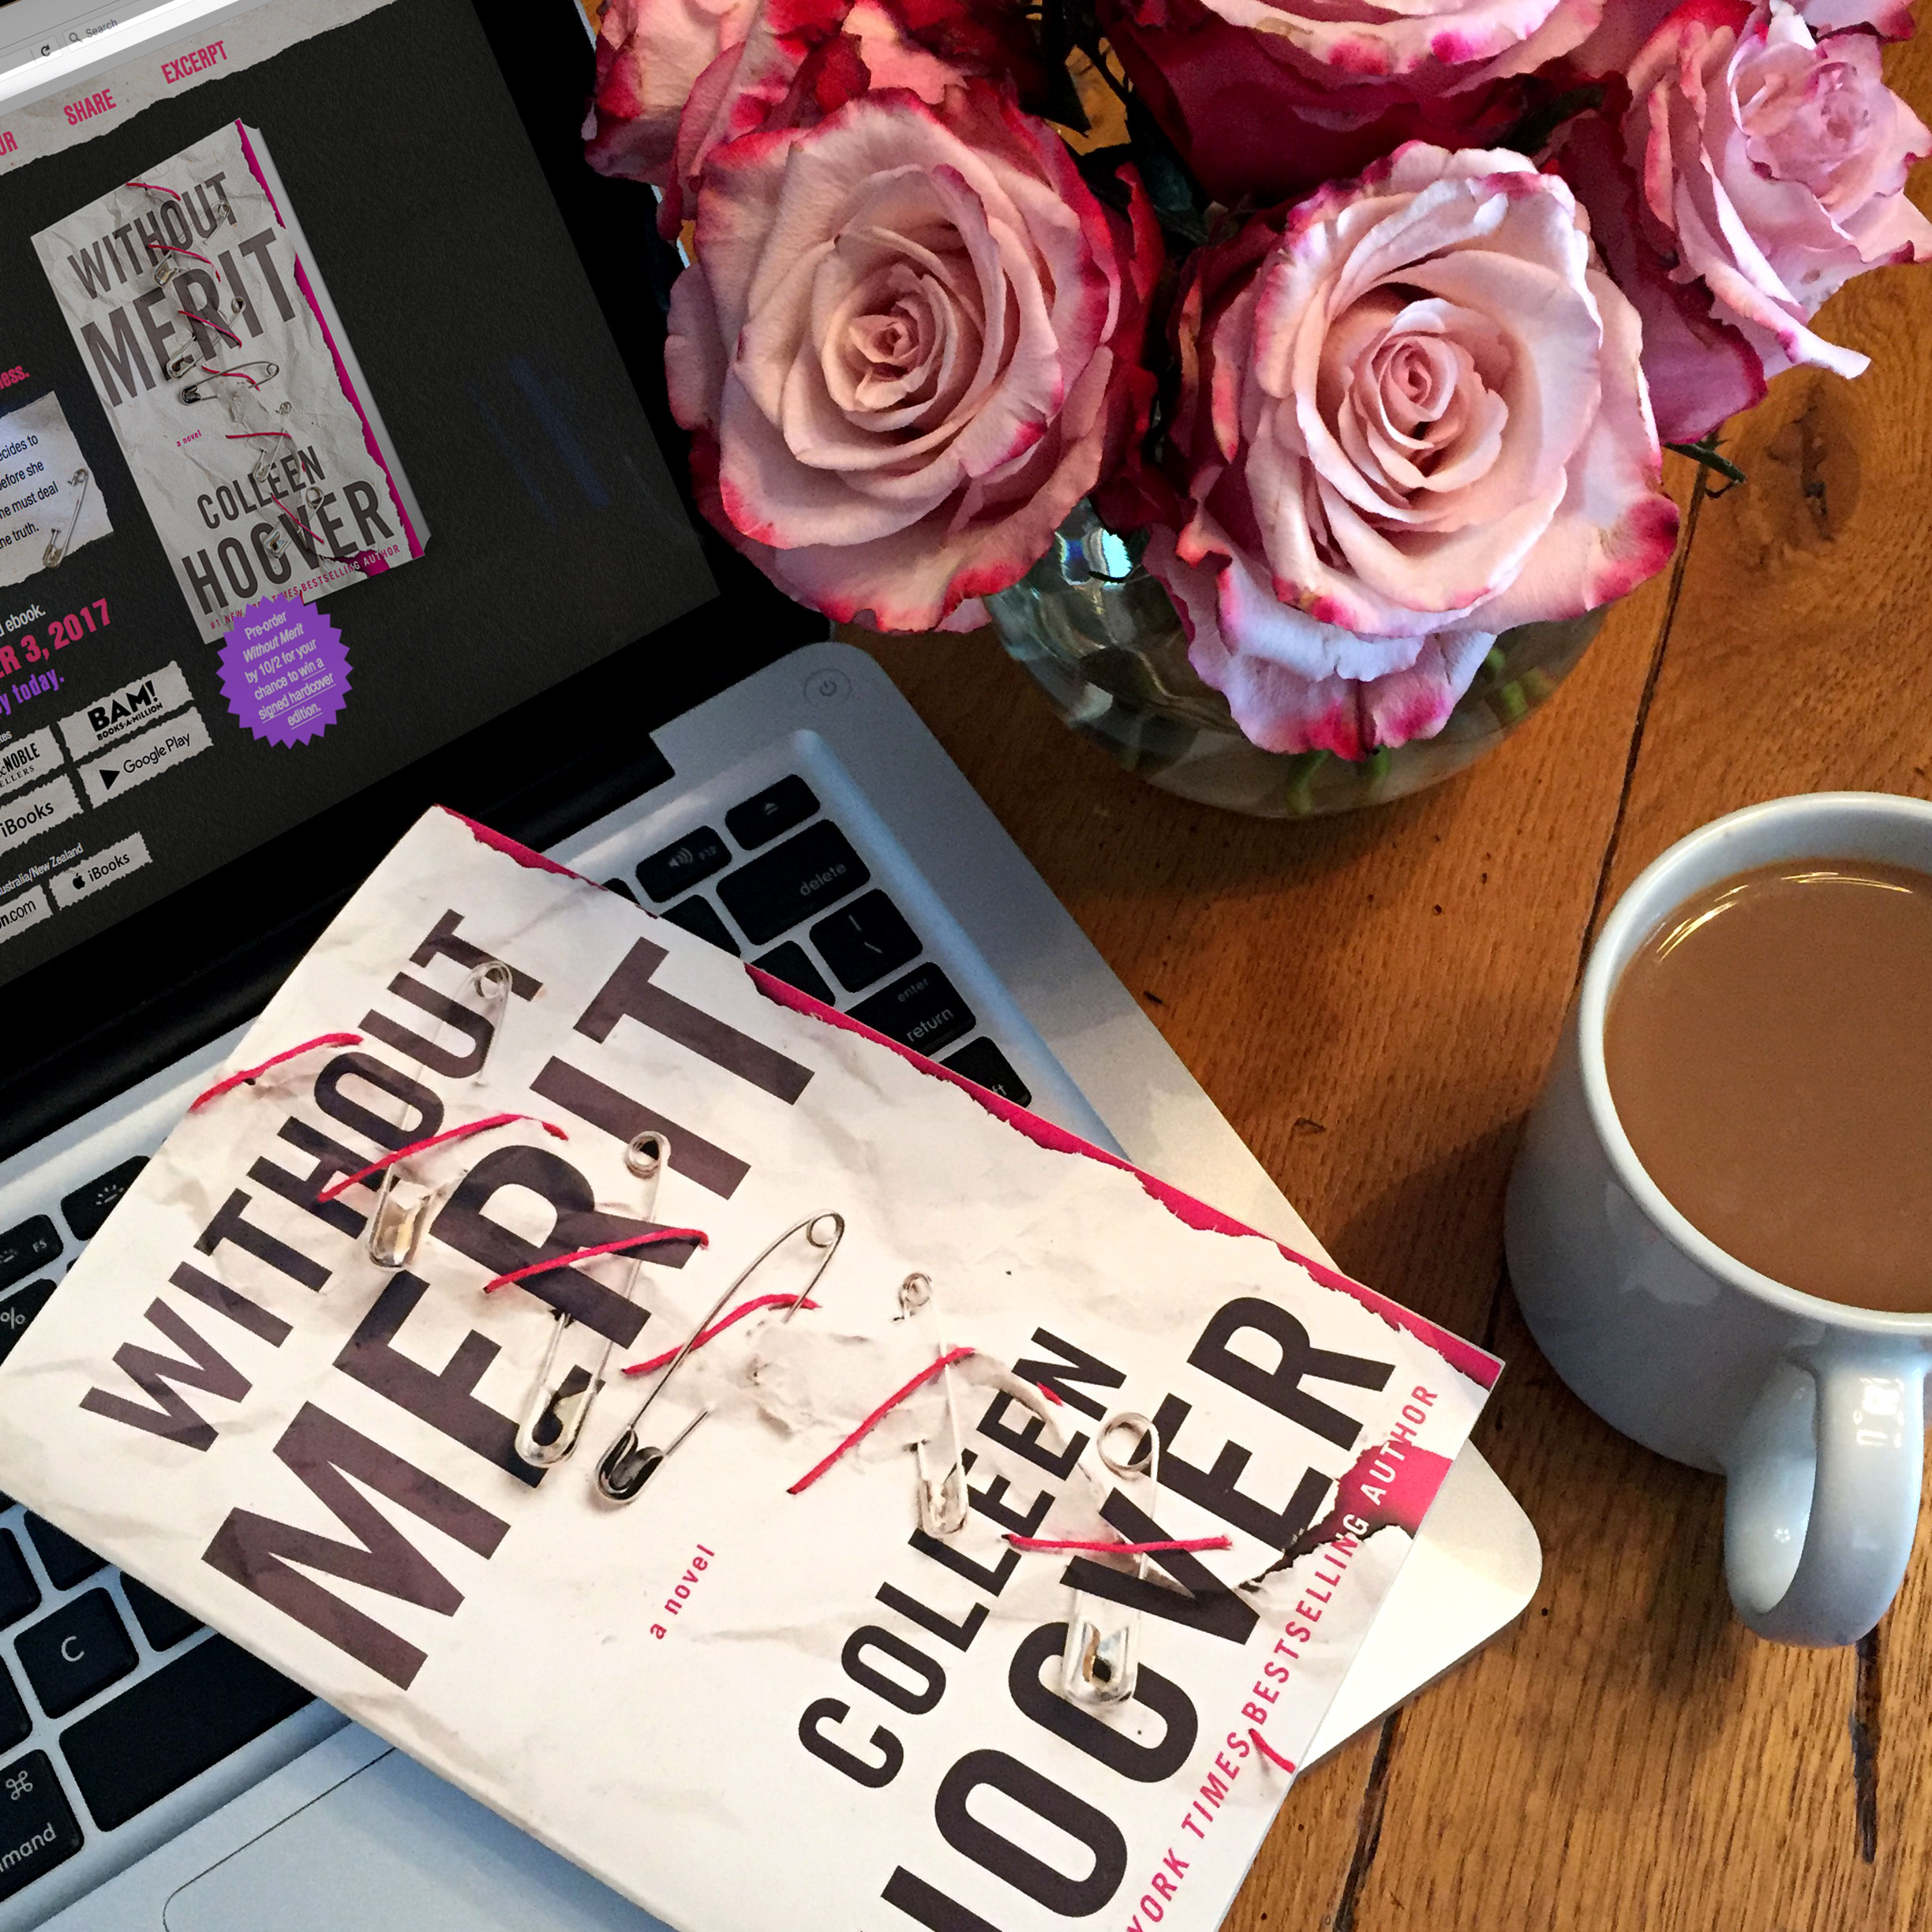 without-merit-colleen-hoover.jpg